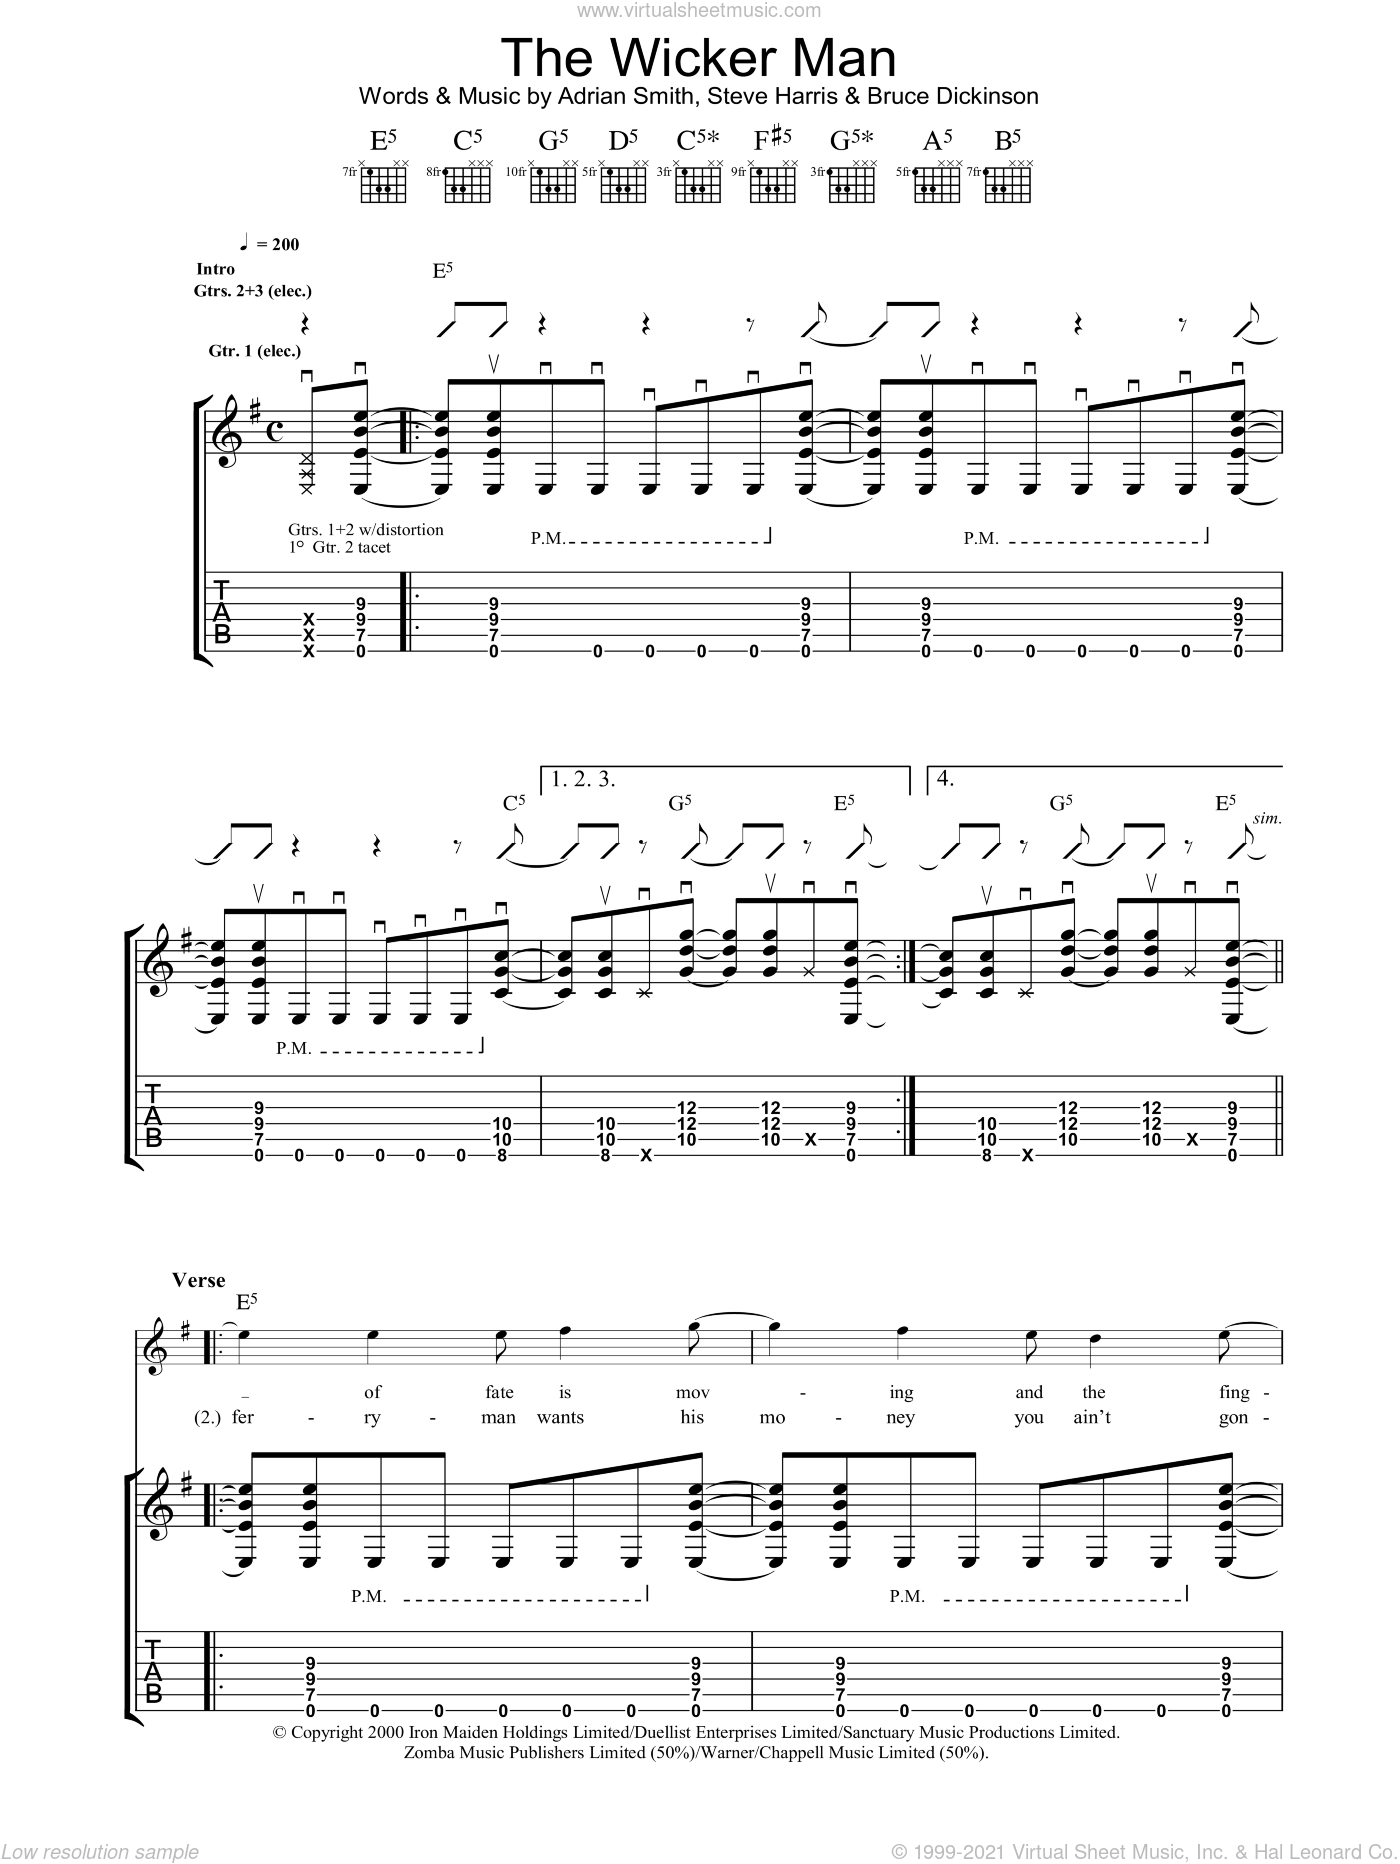 The Wicker Man sheet music for guitar (tablature) by Steve Harris, Iron Maiden, Adrian Smith and Bruce Dickinson